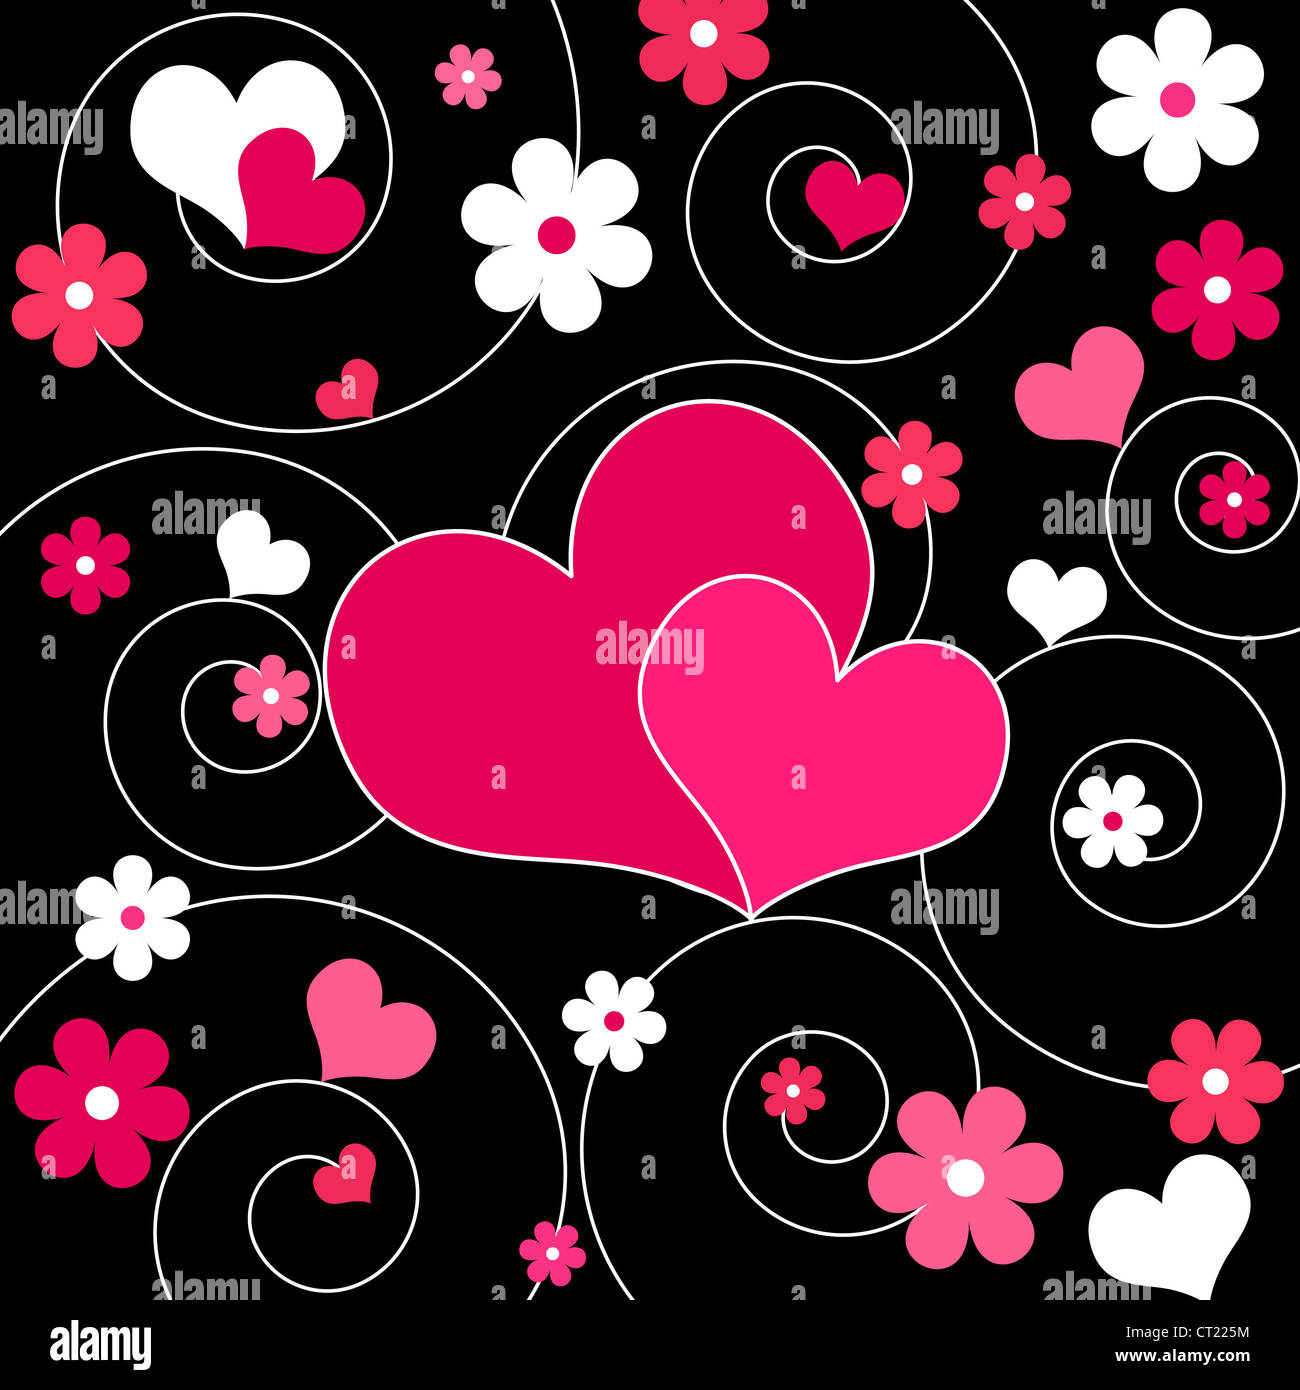 Pair of pink hearts and flowers design Stock Photo